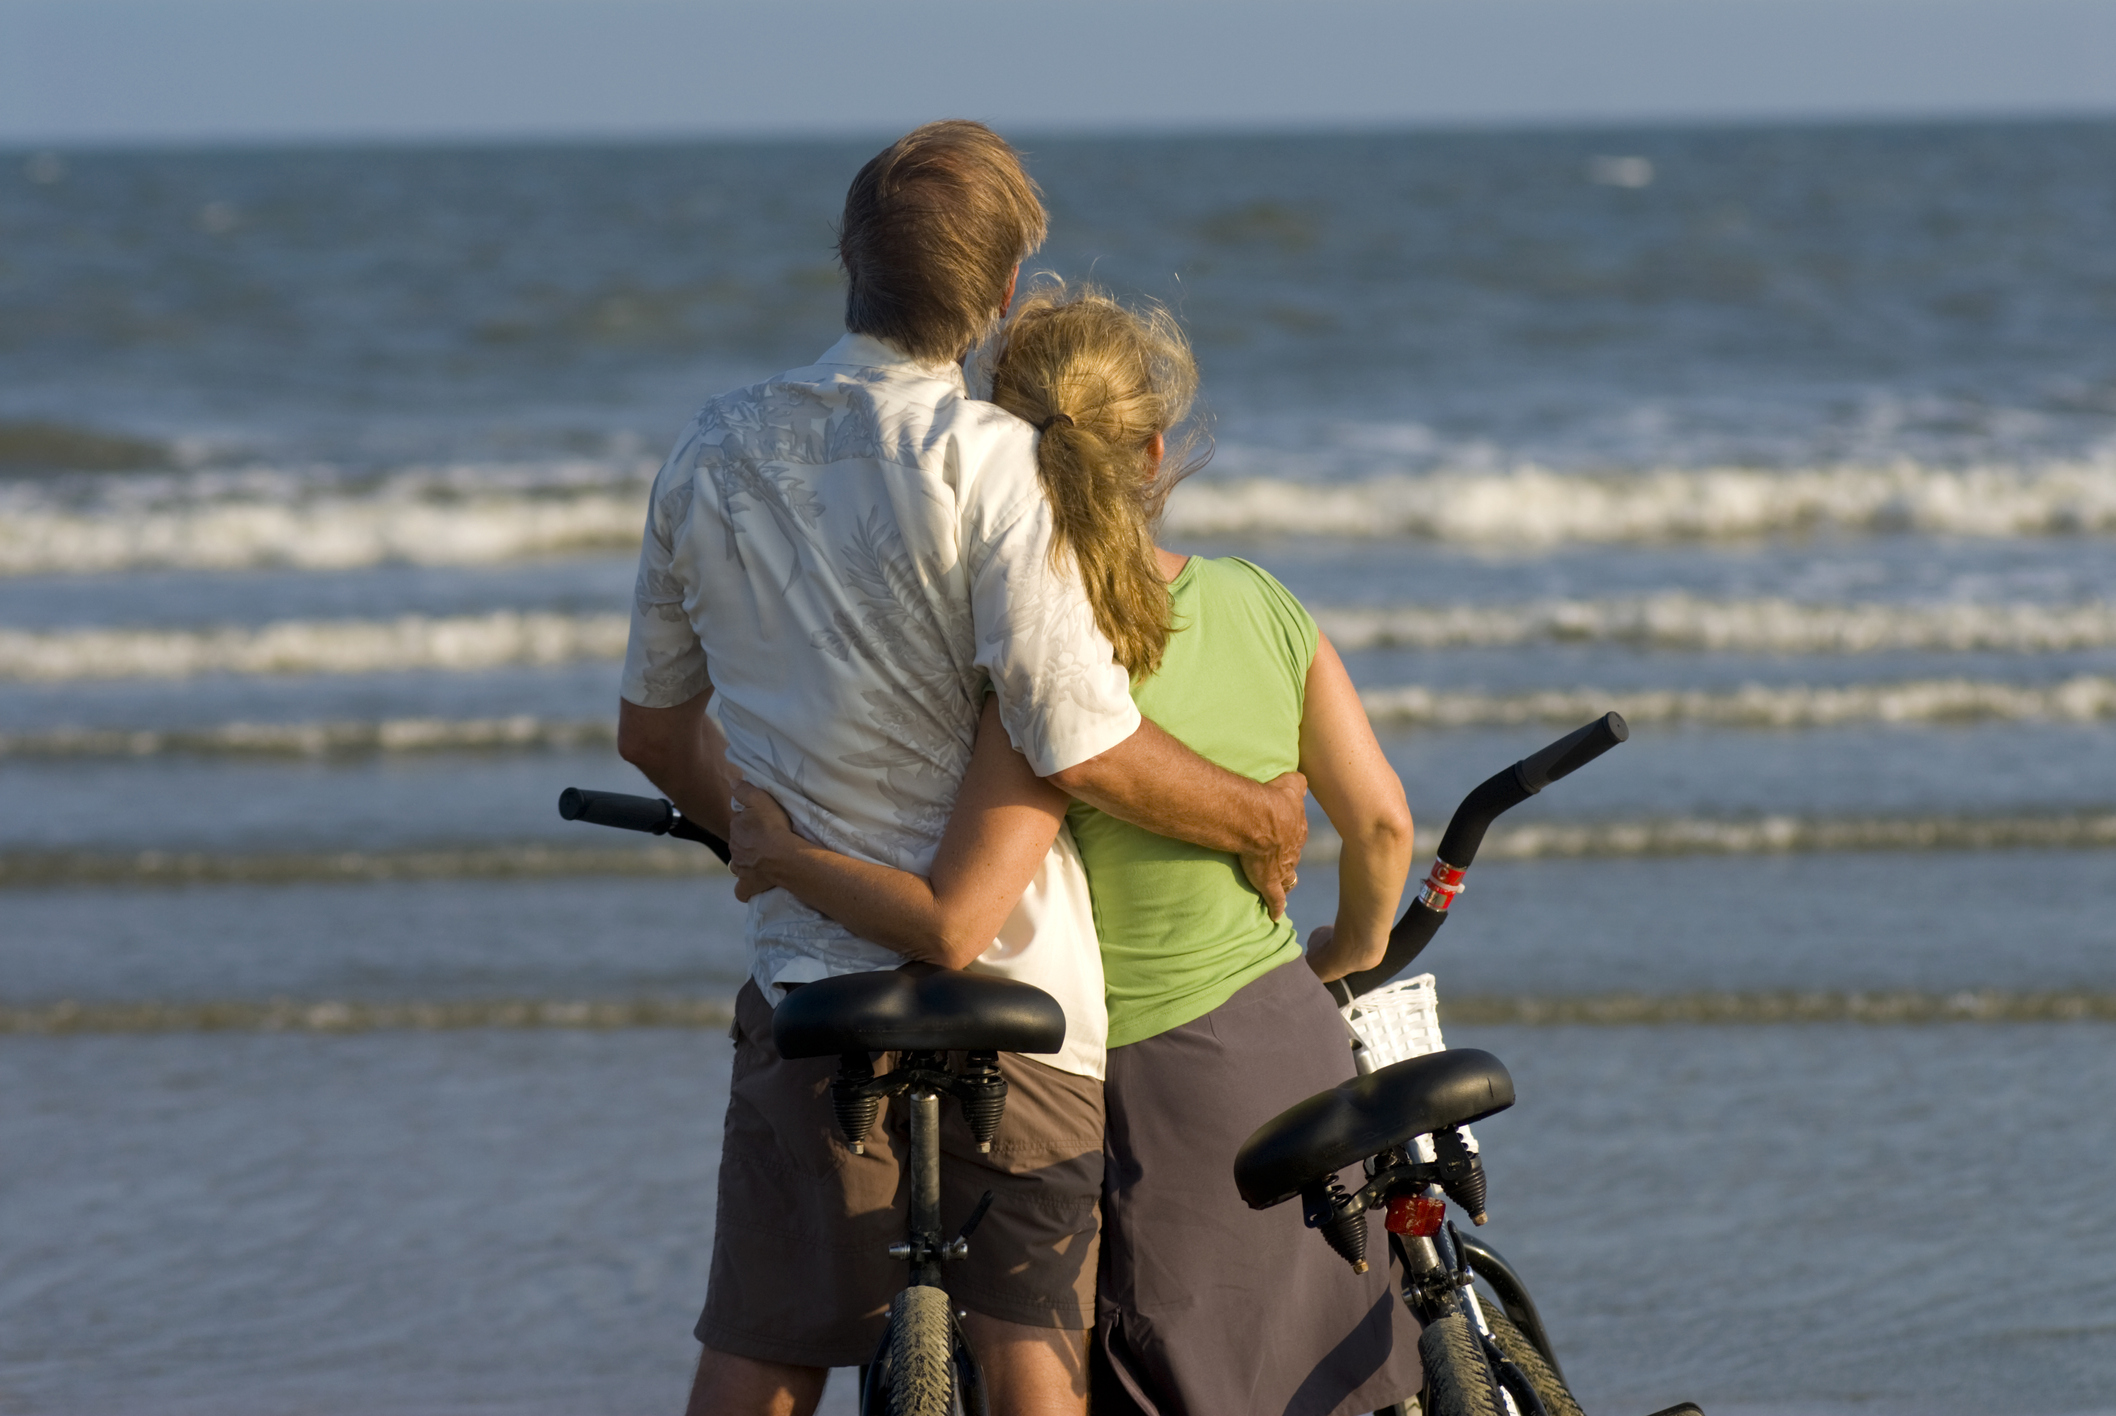 Romantic, middle aged couple at the beach with bicycles, looking into the distance